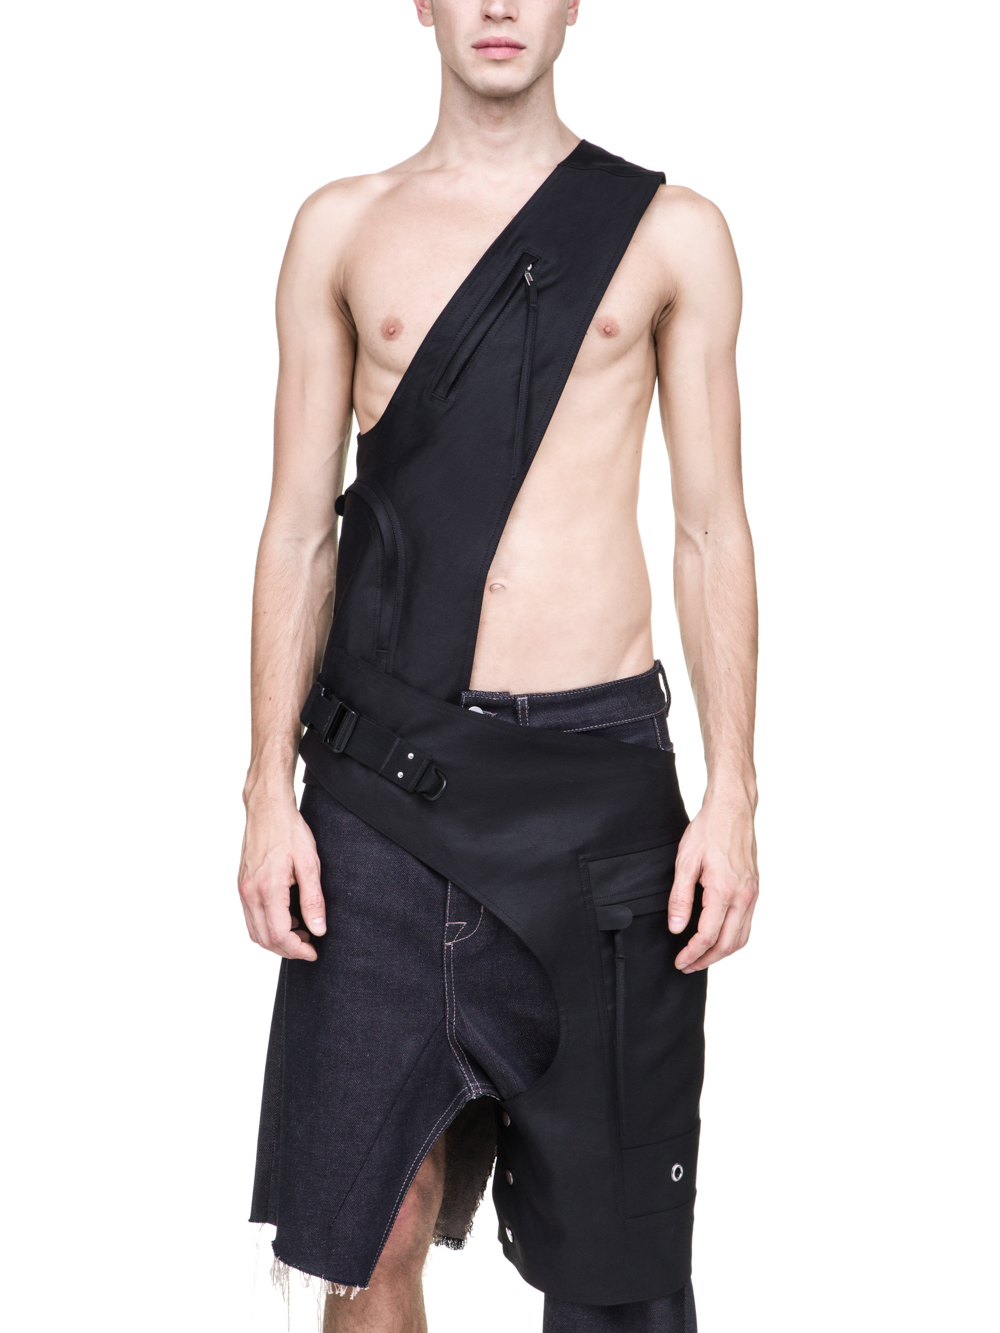 RICK OWENS OFF-THE-RUNWAY CROSS CARGO CHAP IN BLACK